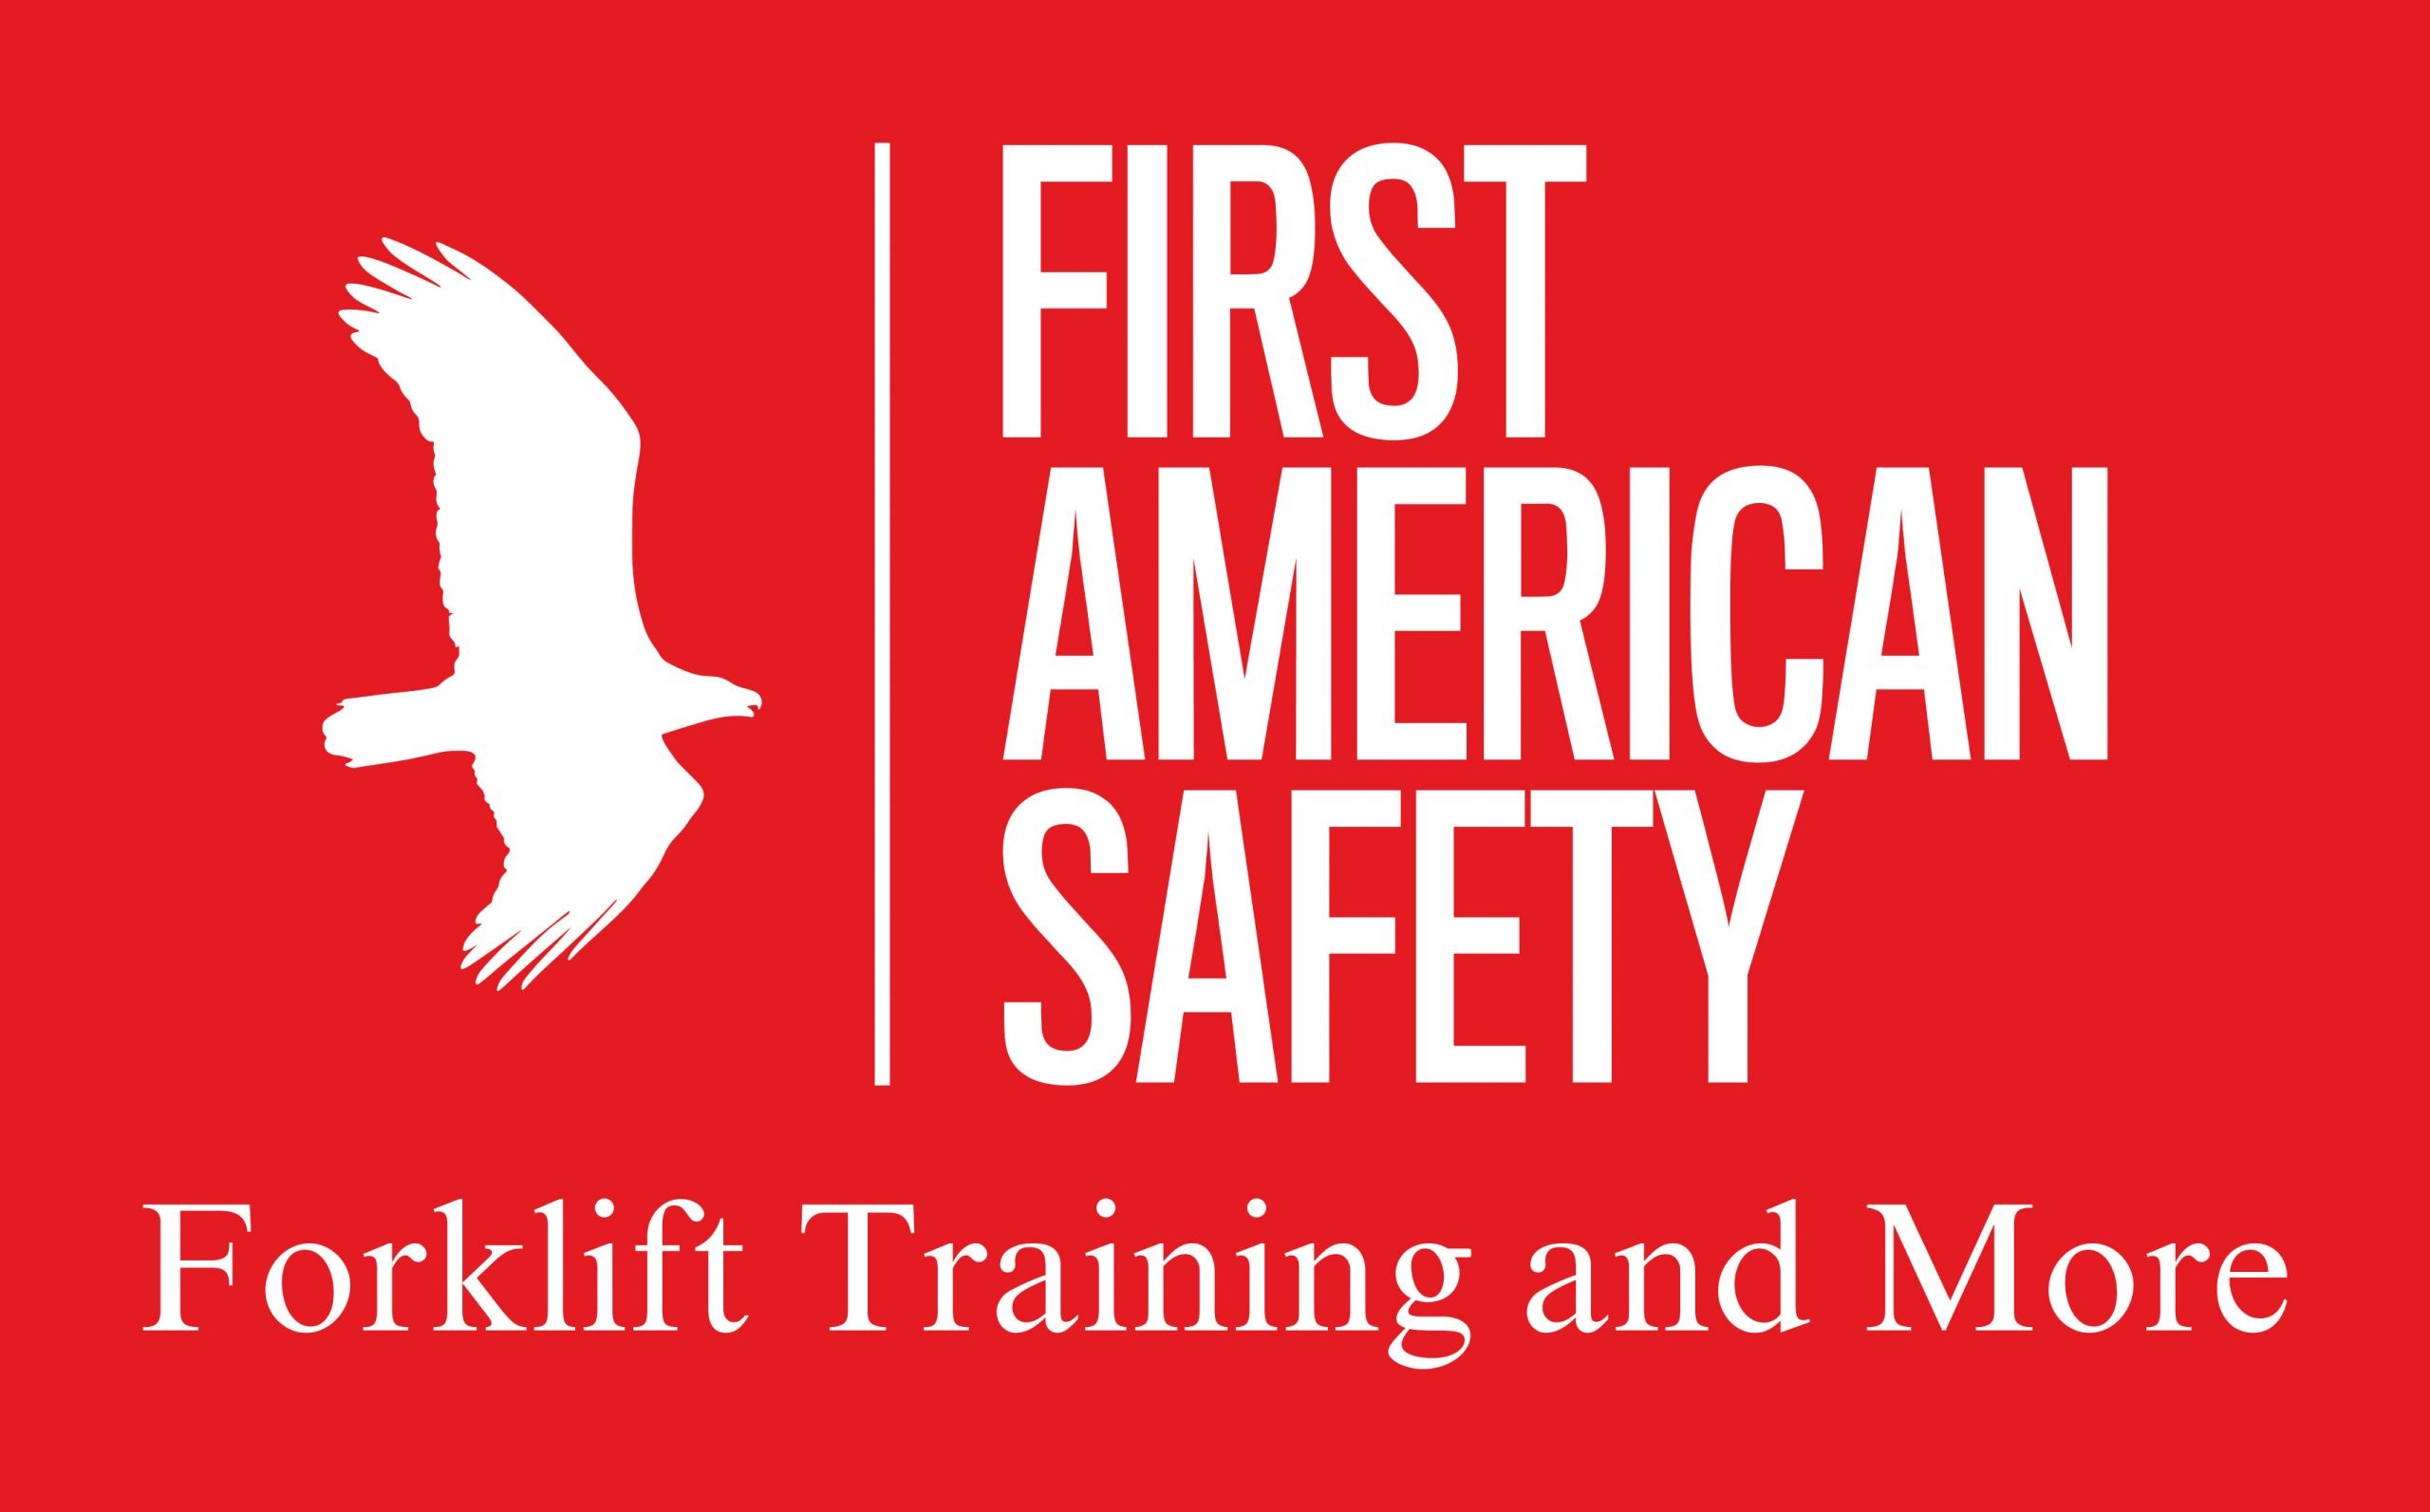 First American Safety